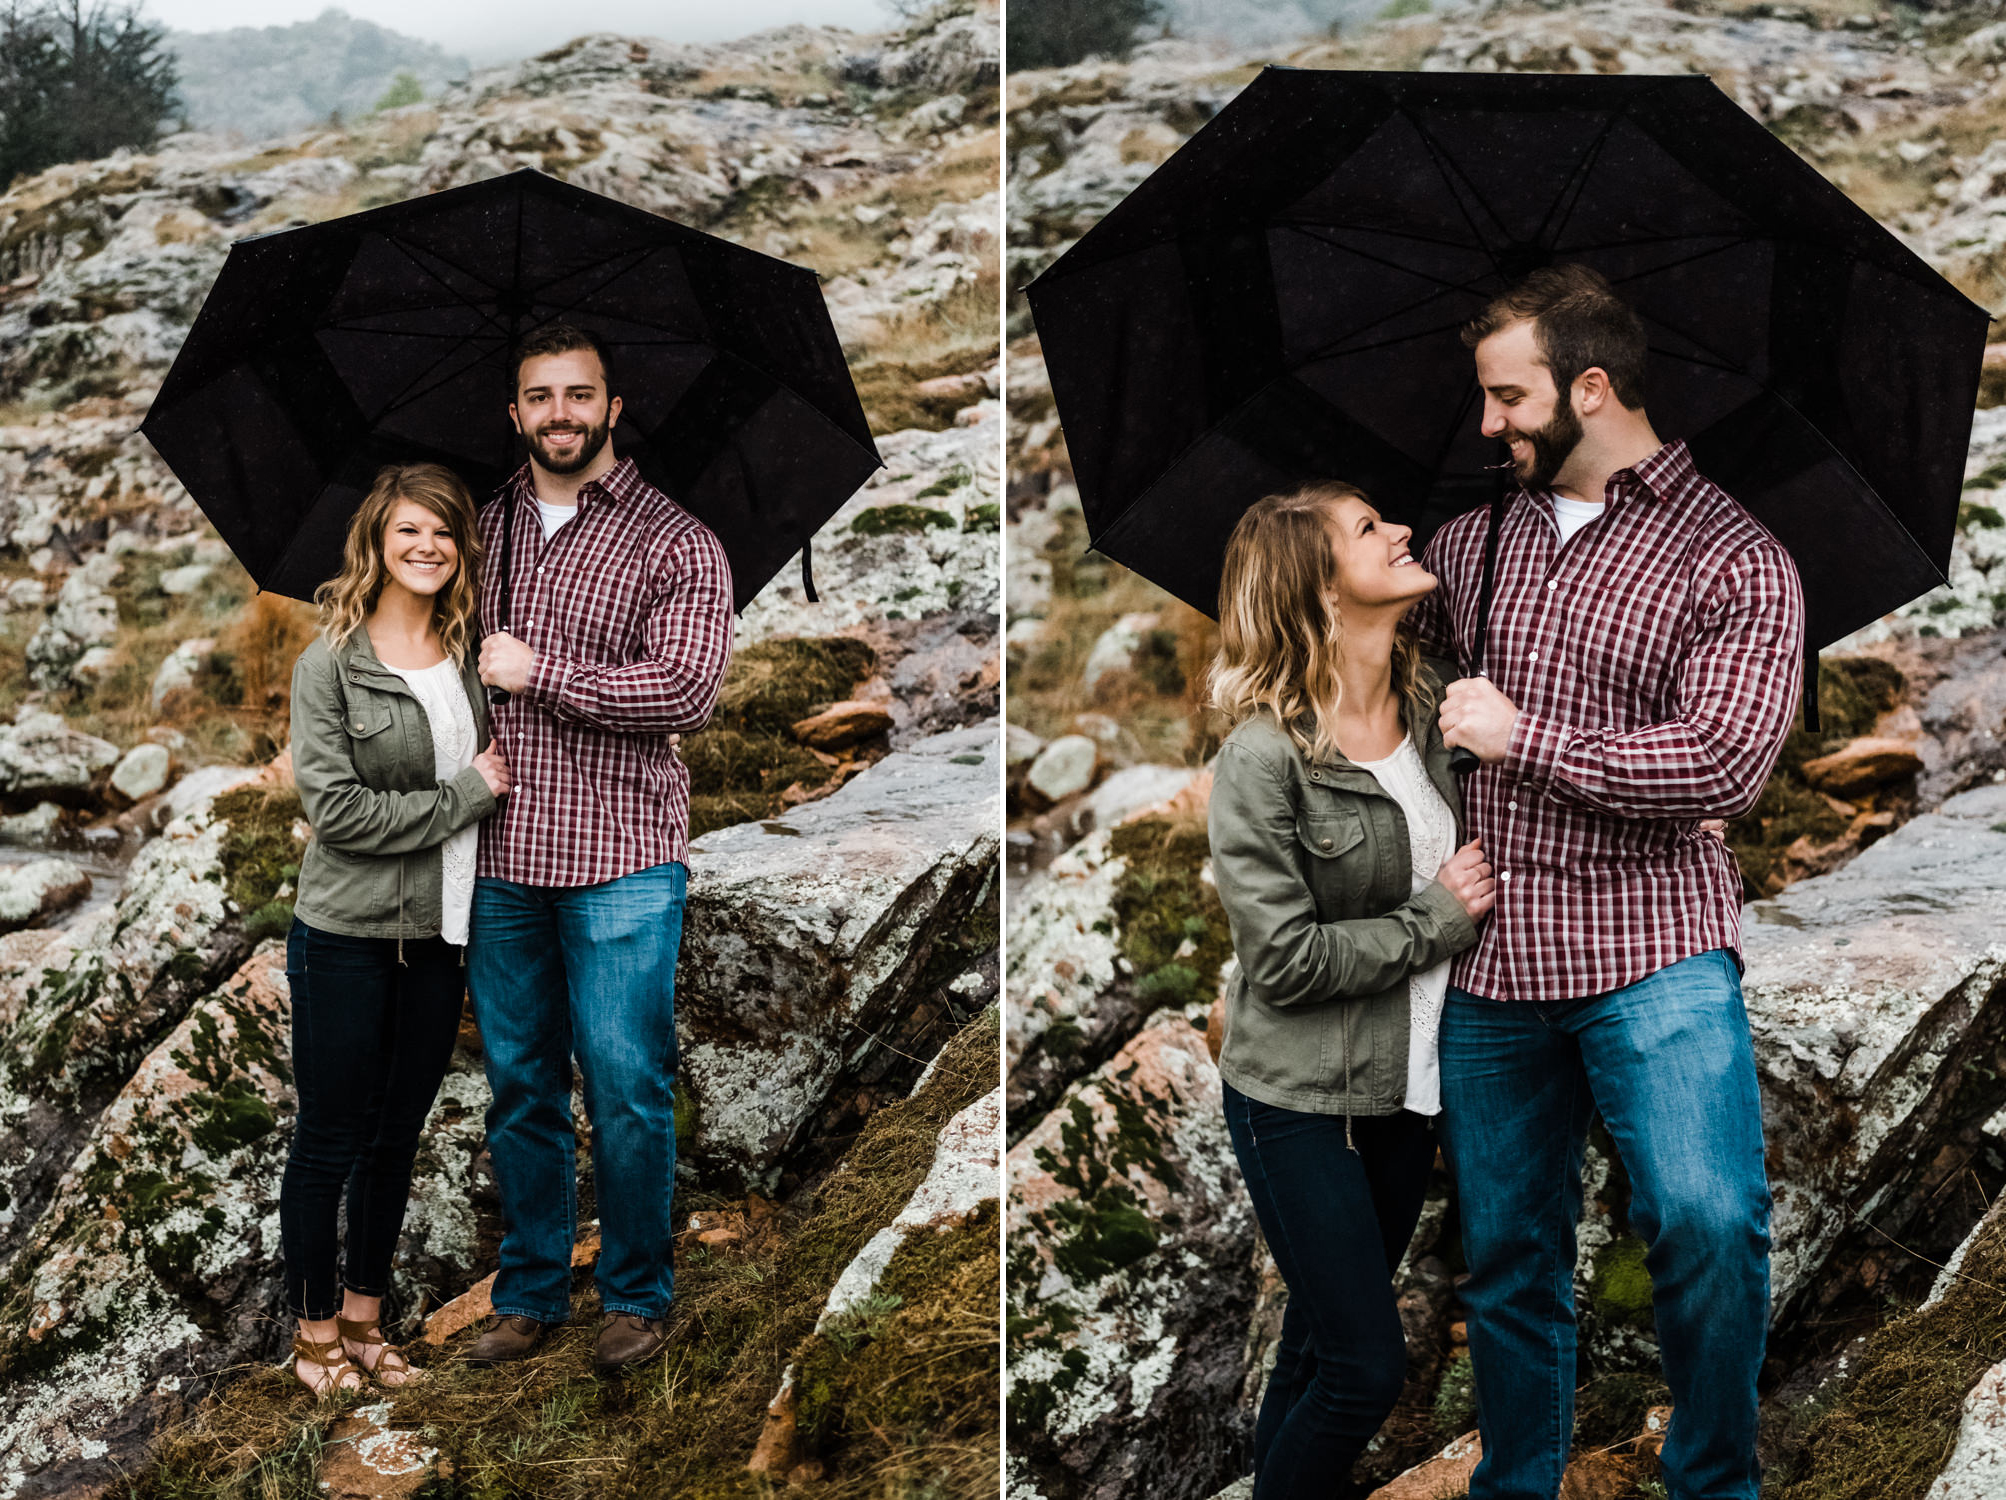 Oklahoma Engagement-Neal Dieker-Oklahoma Wedding Photography-Wichita Mountains-Wichita, Kansas Portrait Photographer-105.jpg